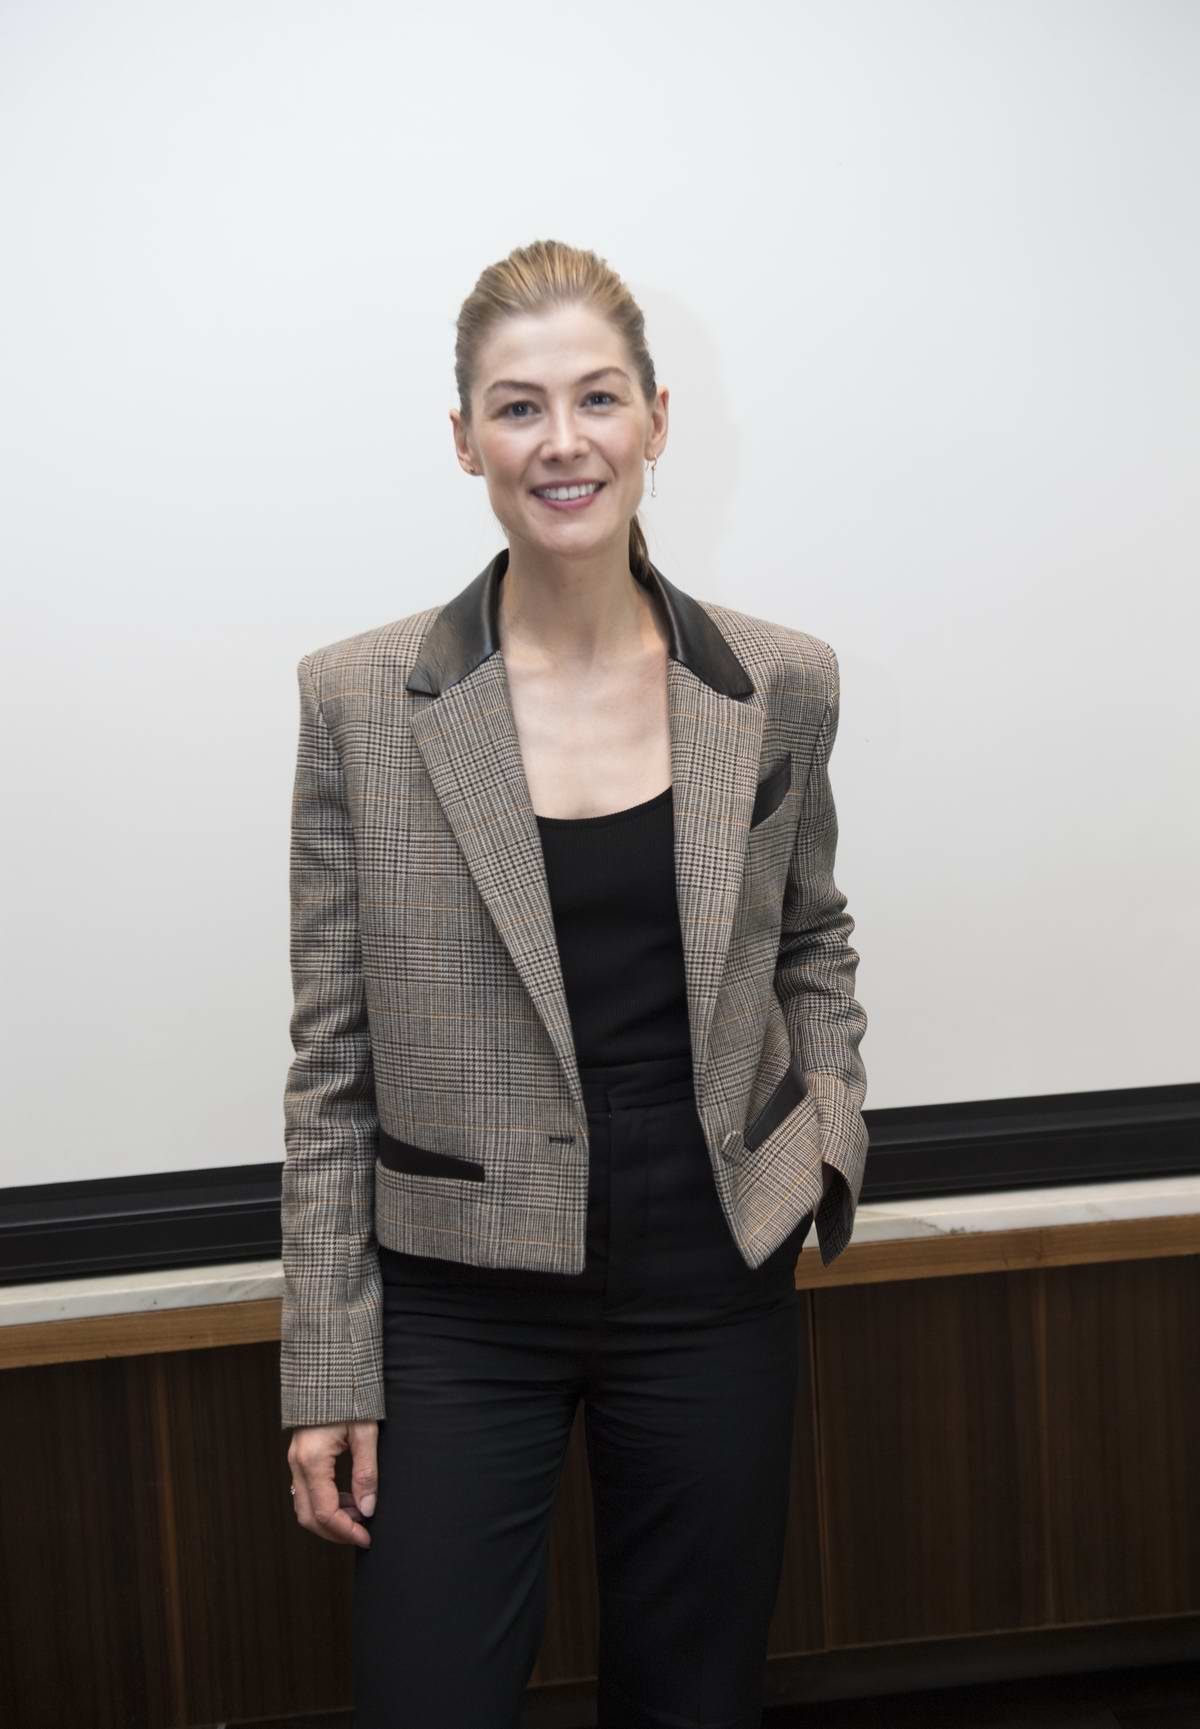 Rosamund Pike at the 'A Private War' Press Conference at the Four Seasons Hotel in Beverly Hills, Los Angeles